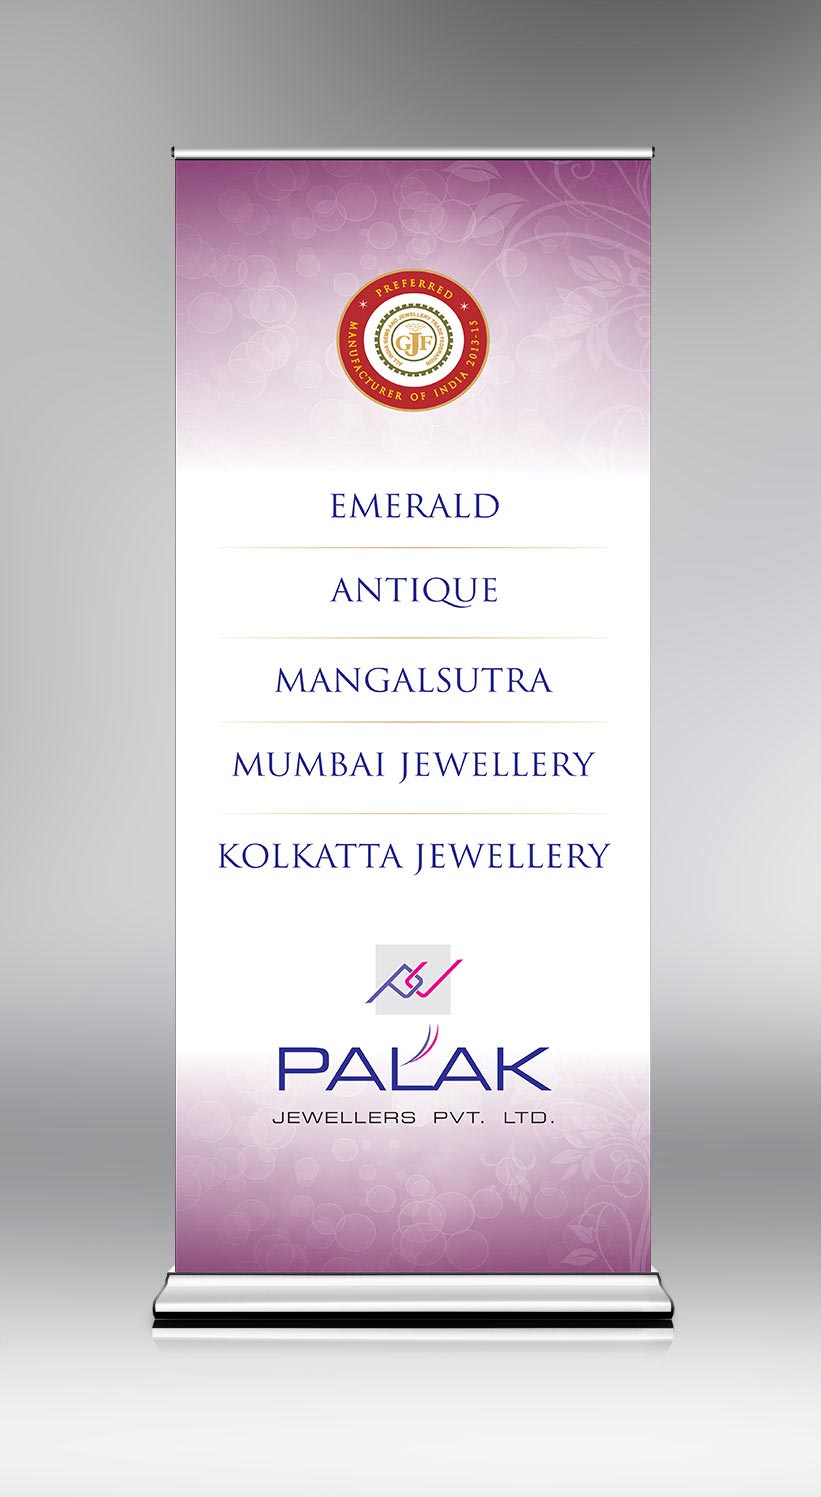 Standy for Palak jewellery